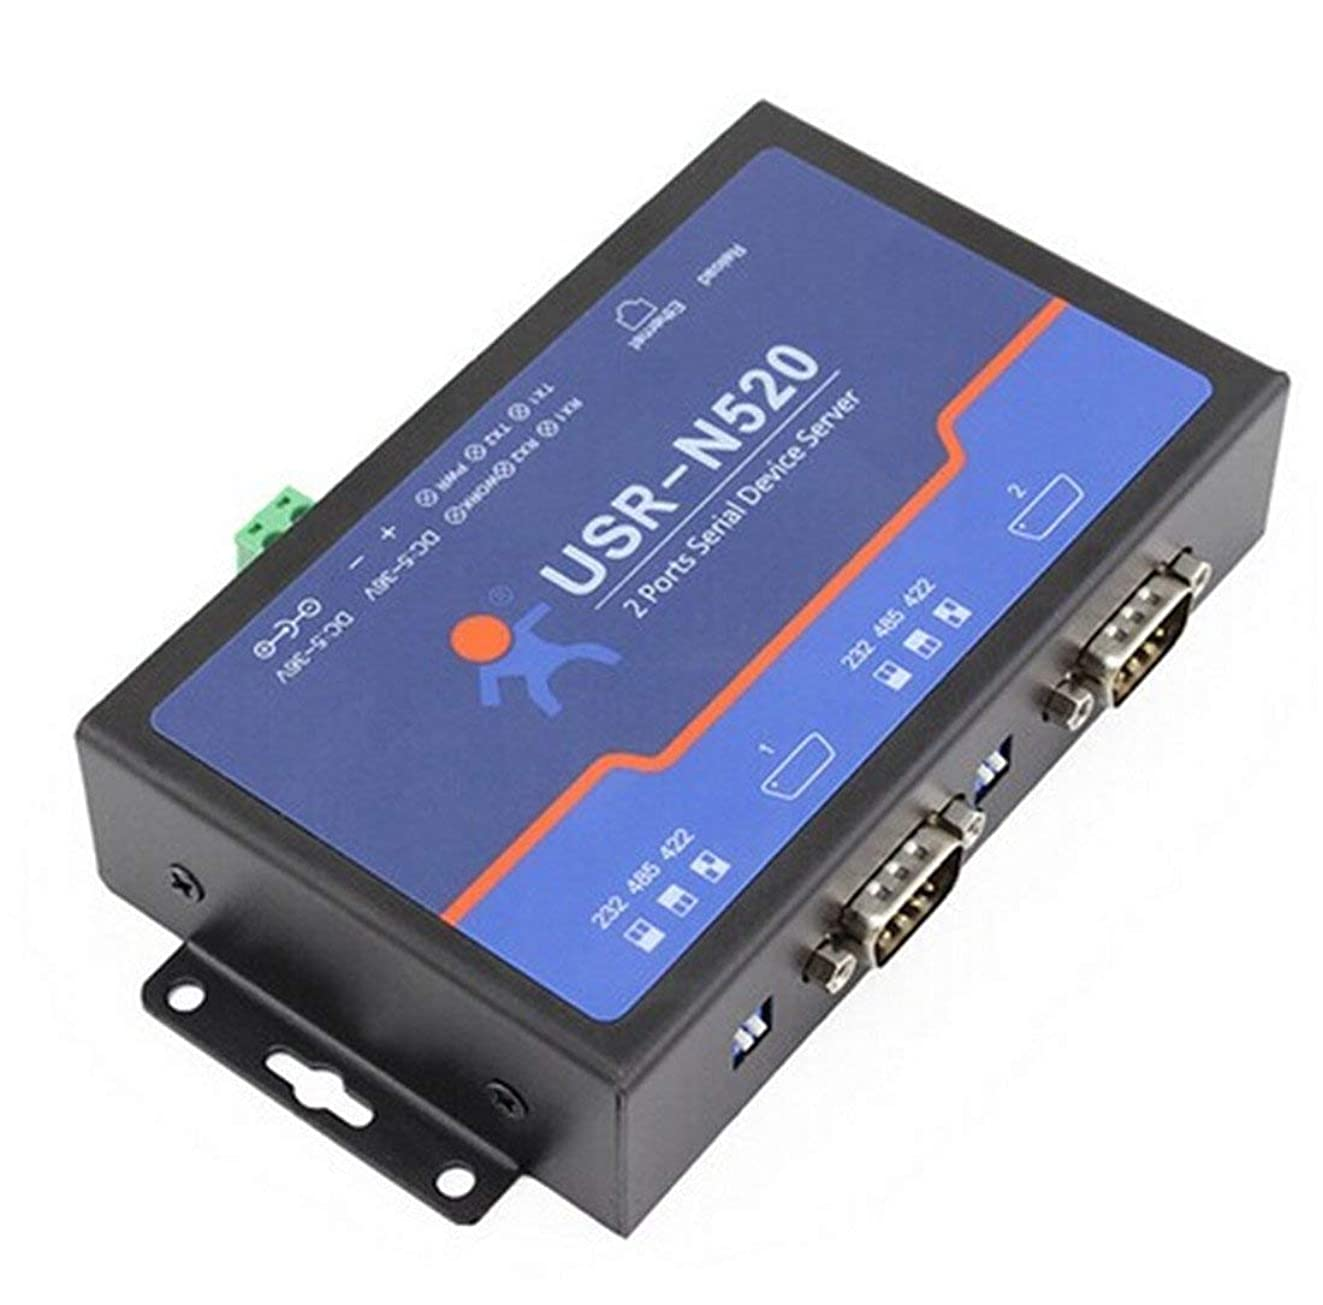 ?USR-N520 Double Serial Device RS232 RS485 RS422 Ethernet Server Modbus Multi-Host Polling